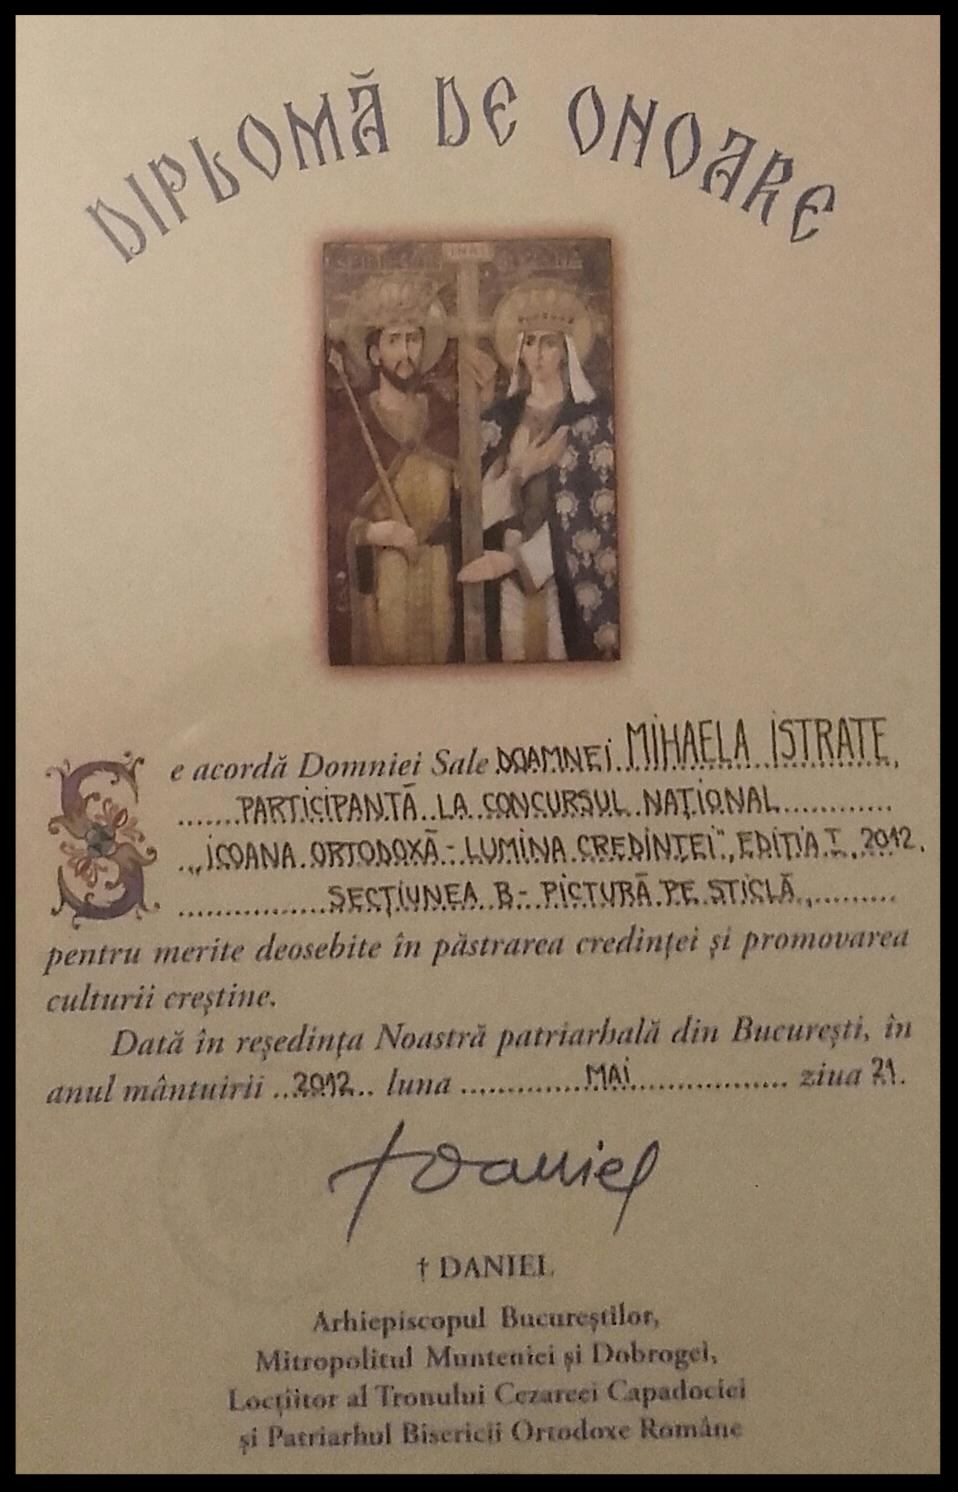 - HAVING THE HONOR TO RECEIVE THE EXCELLENCE DIPLOMA FROM THE PATRIARCH OF ROMANIAN ORTHODOX CHURCH FOR MY PARTICIPATION AT NATIONAL EXHIBITION '' ORTHODOX ICONS''.